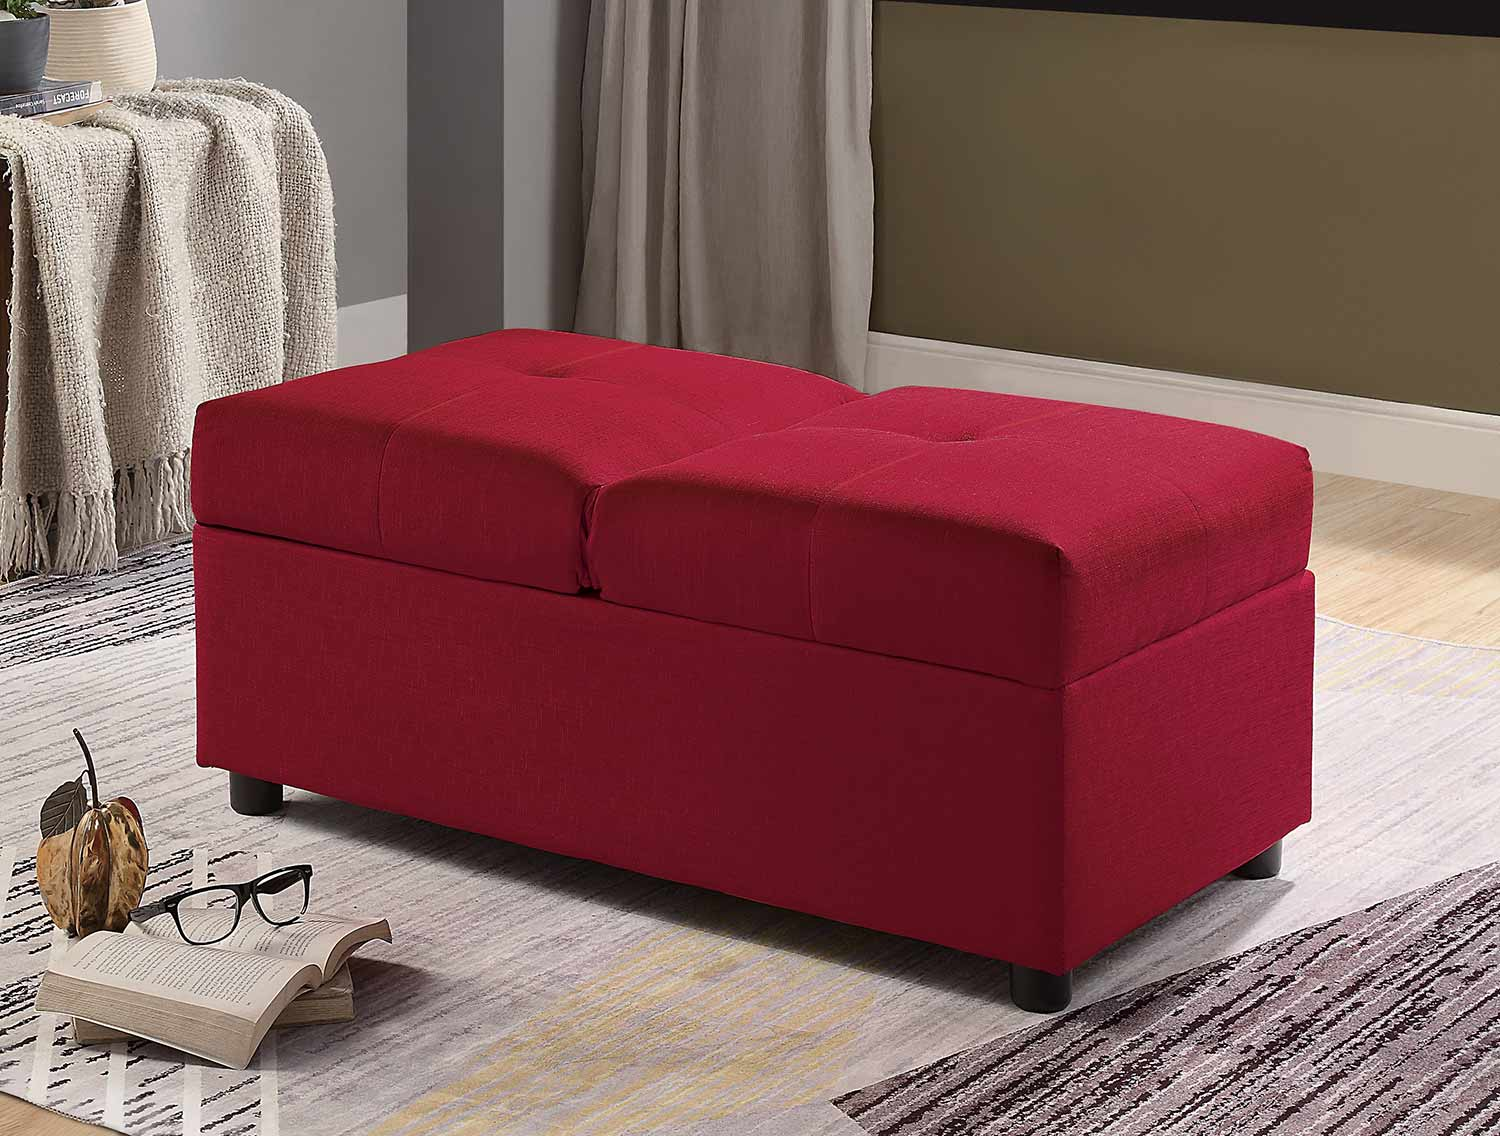 Homelegance Denby Storage Ottoman/Chair - Red